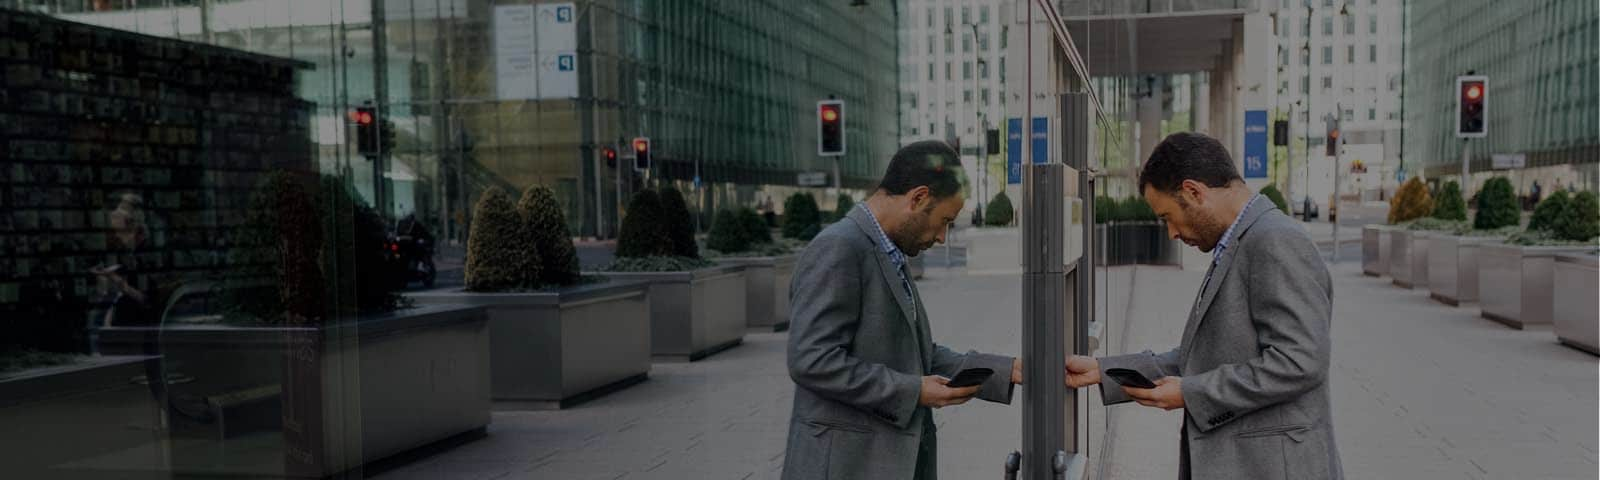 Man using an atm in big city